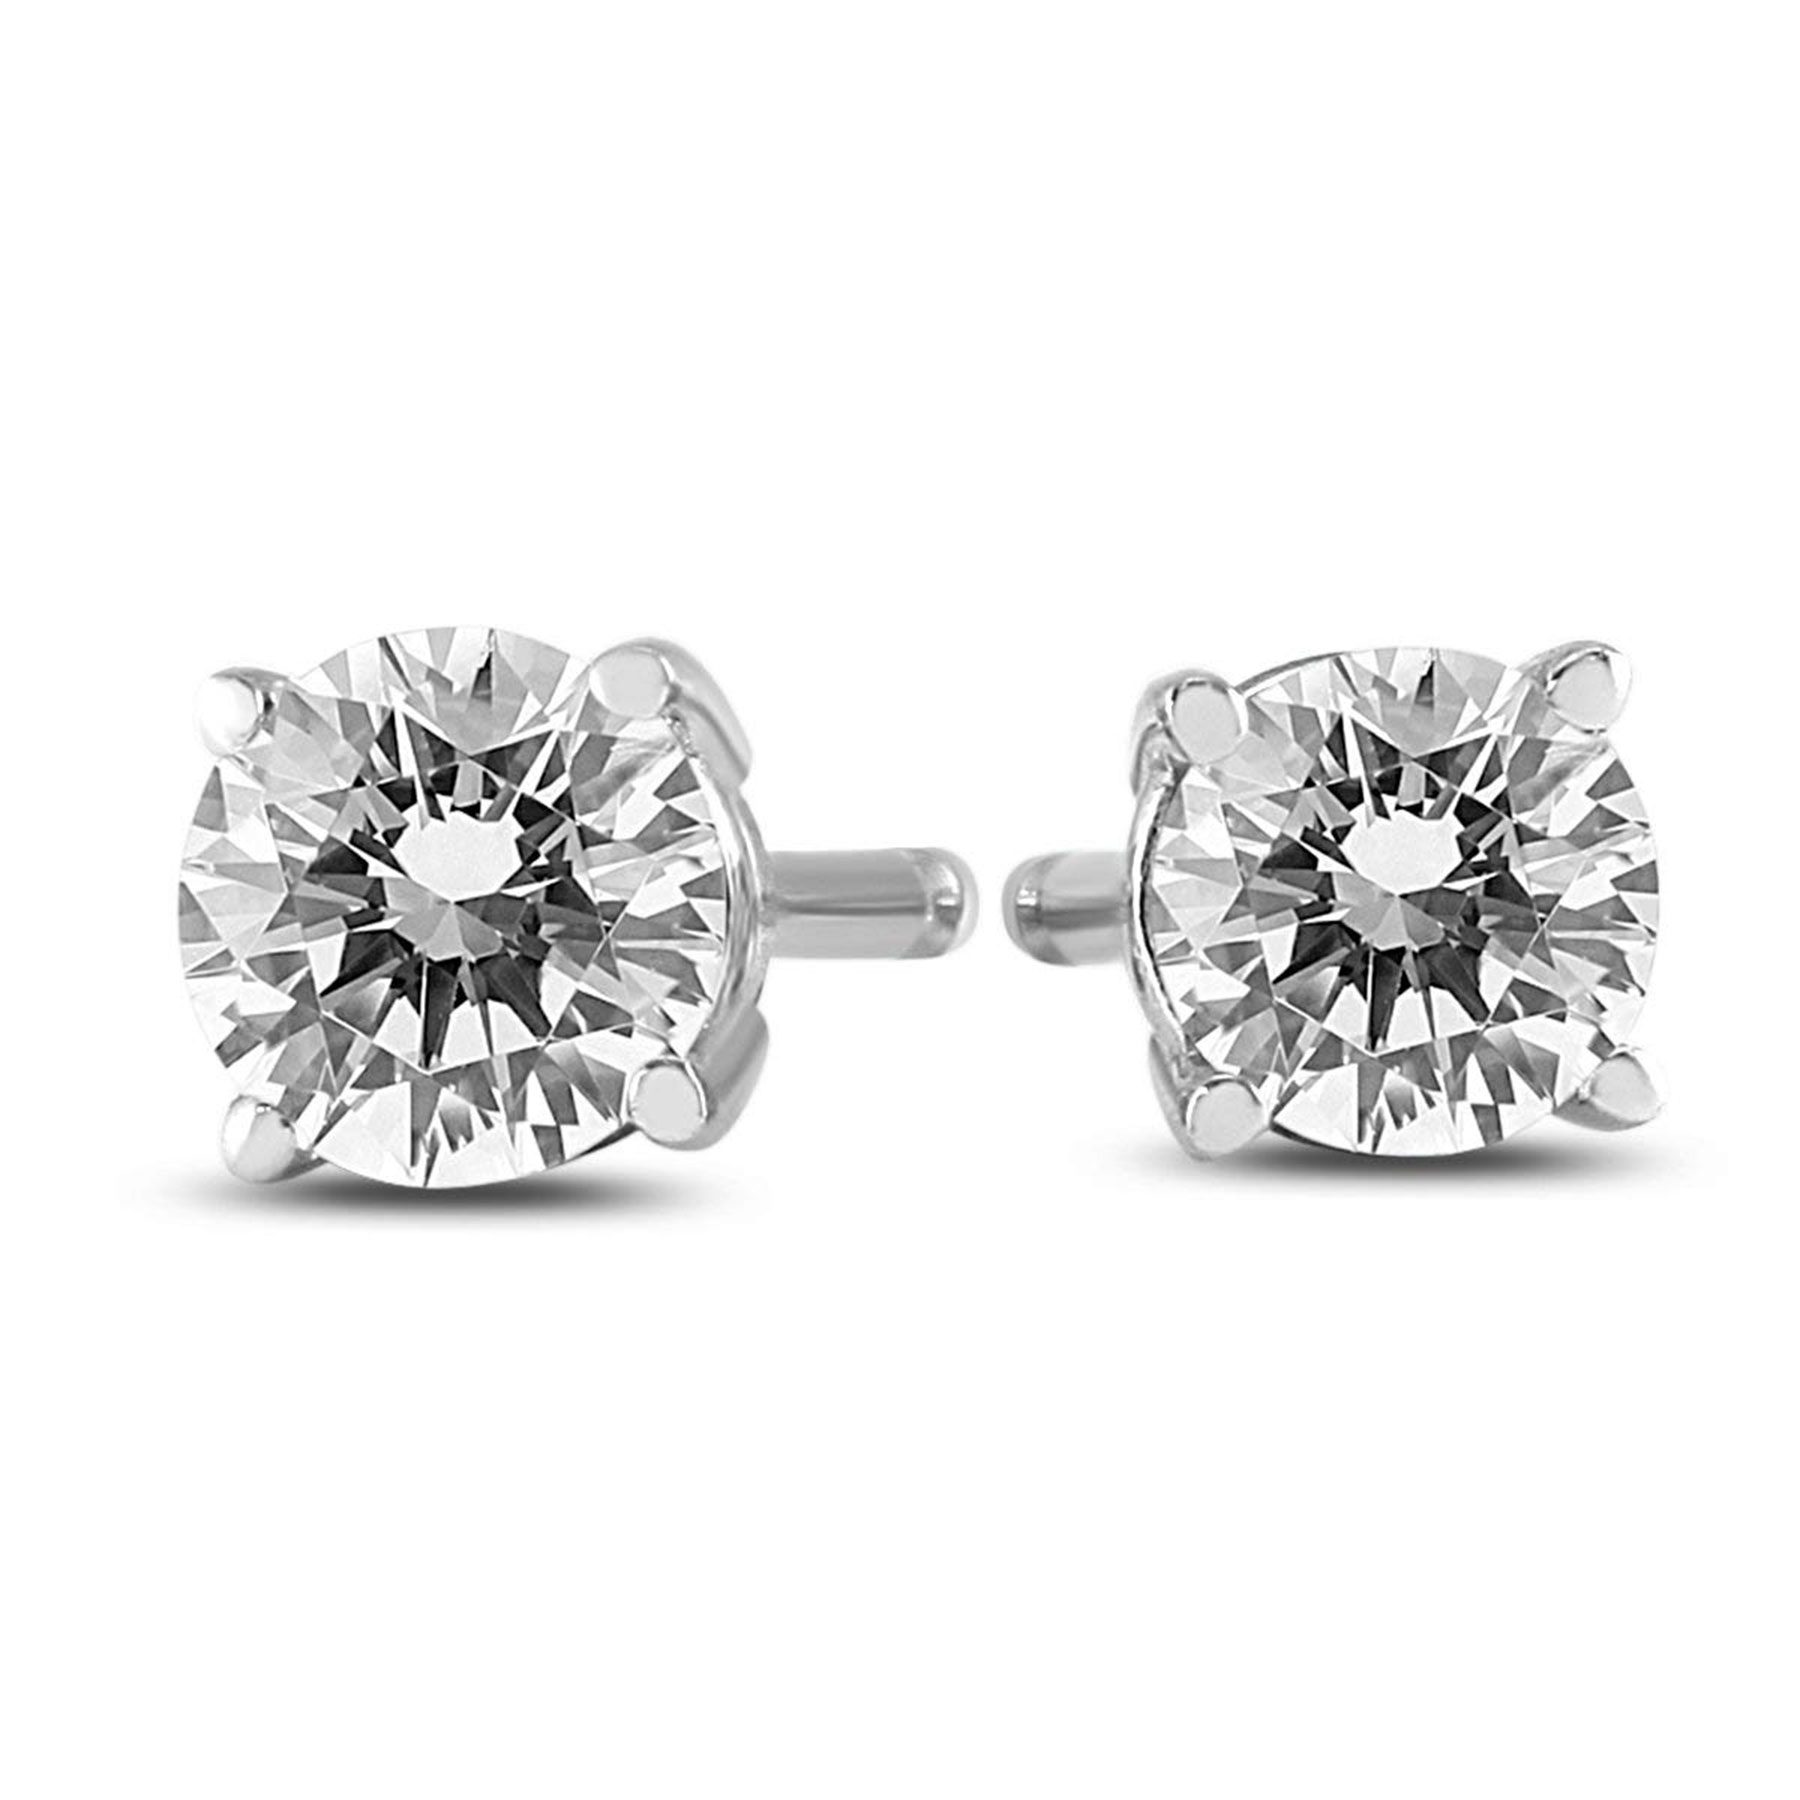 Round Diamond Solitaire Stud Earrings